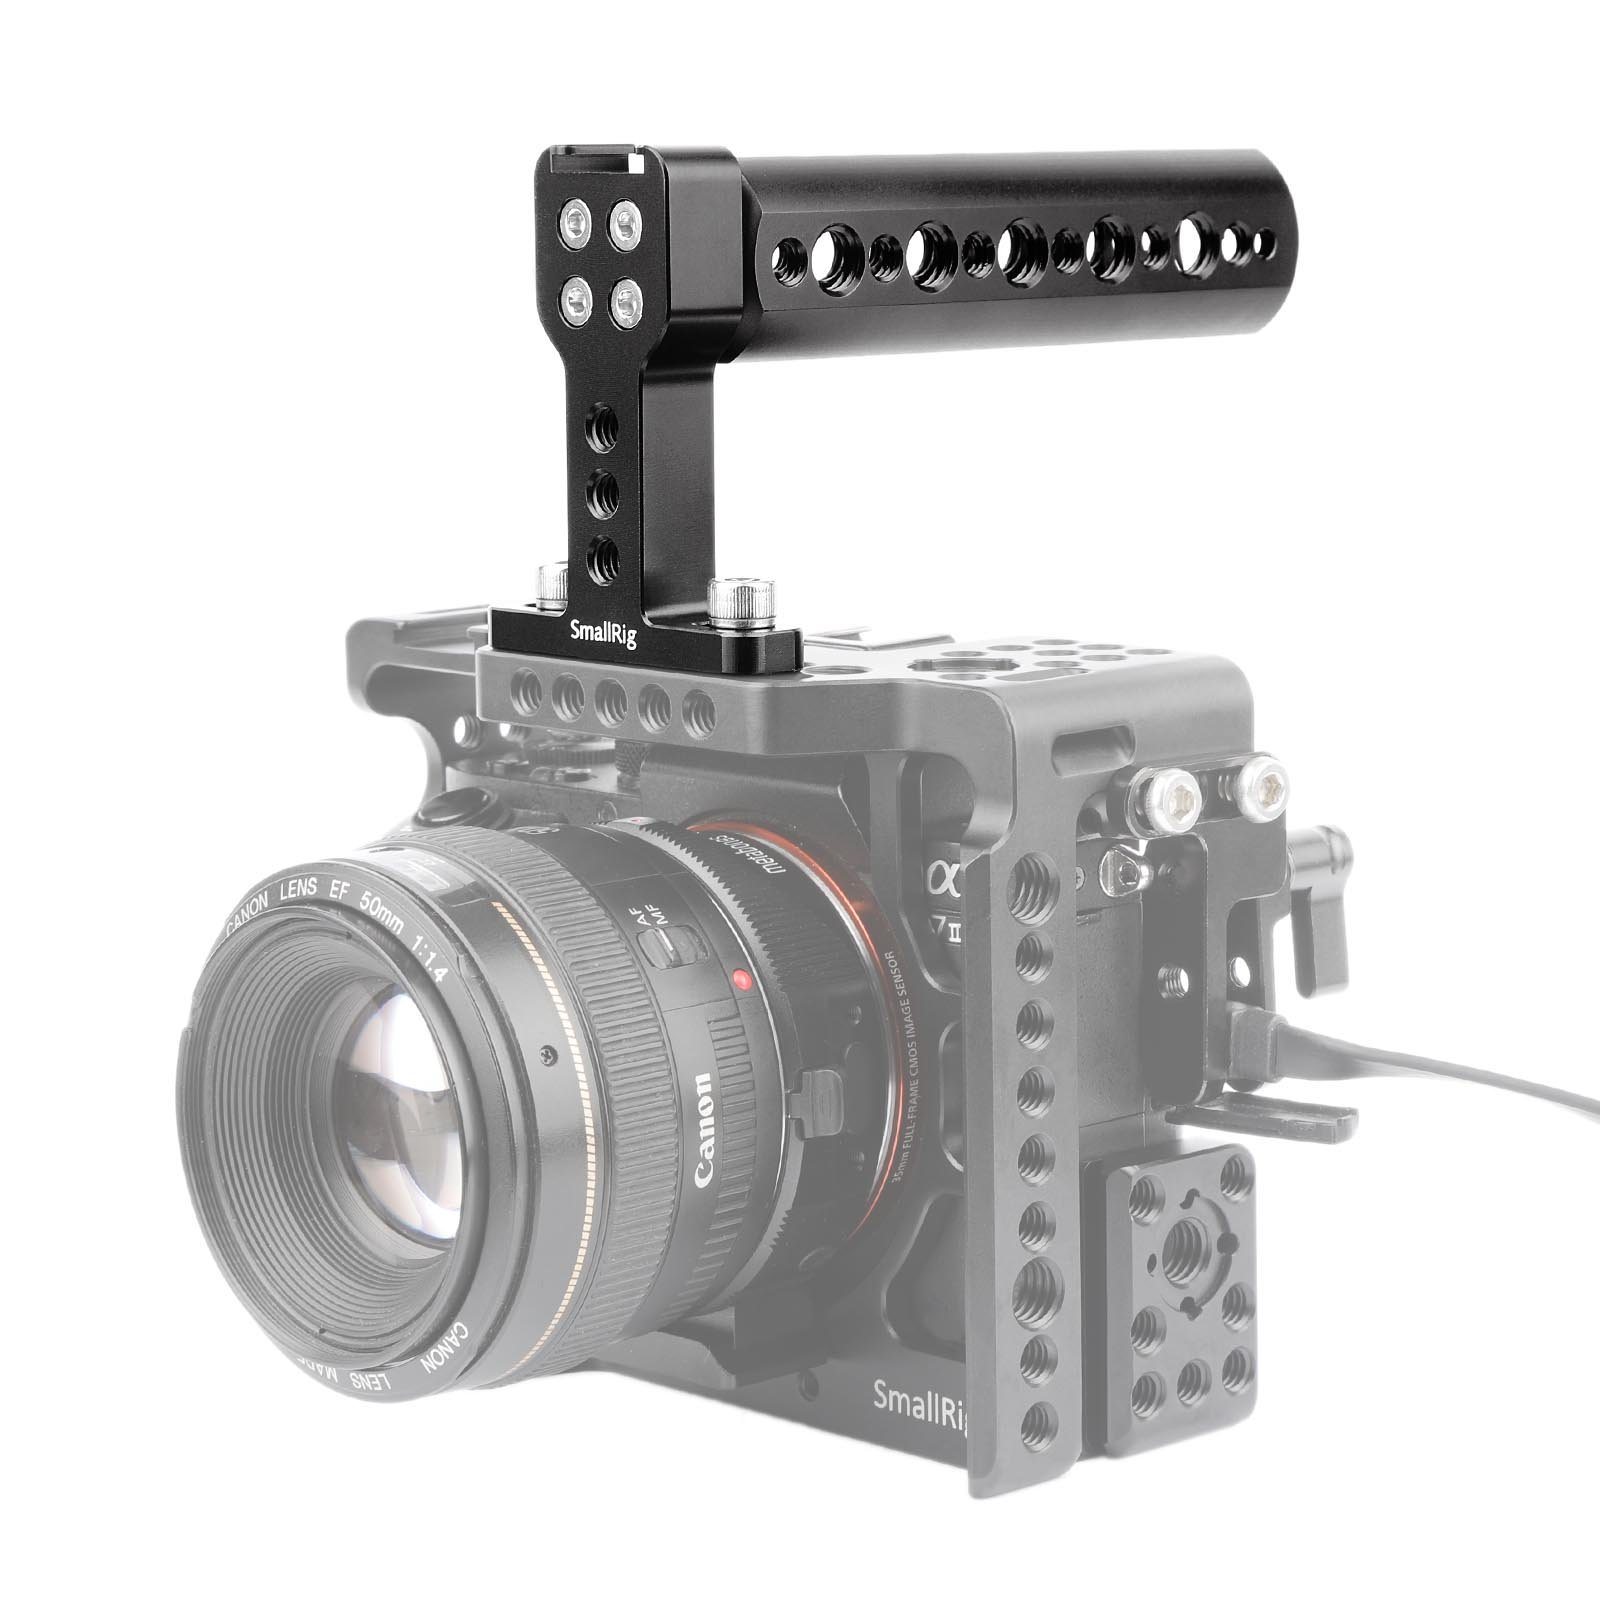 SmallRig Top Handle with 1/4'' 3/8'' Mounting Holes and Cold Shoe for Video Camera Cage, Microphone Mount, LED Light, Monitor Mount - 1638